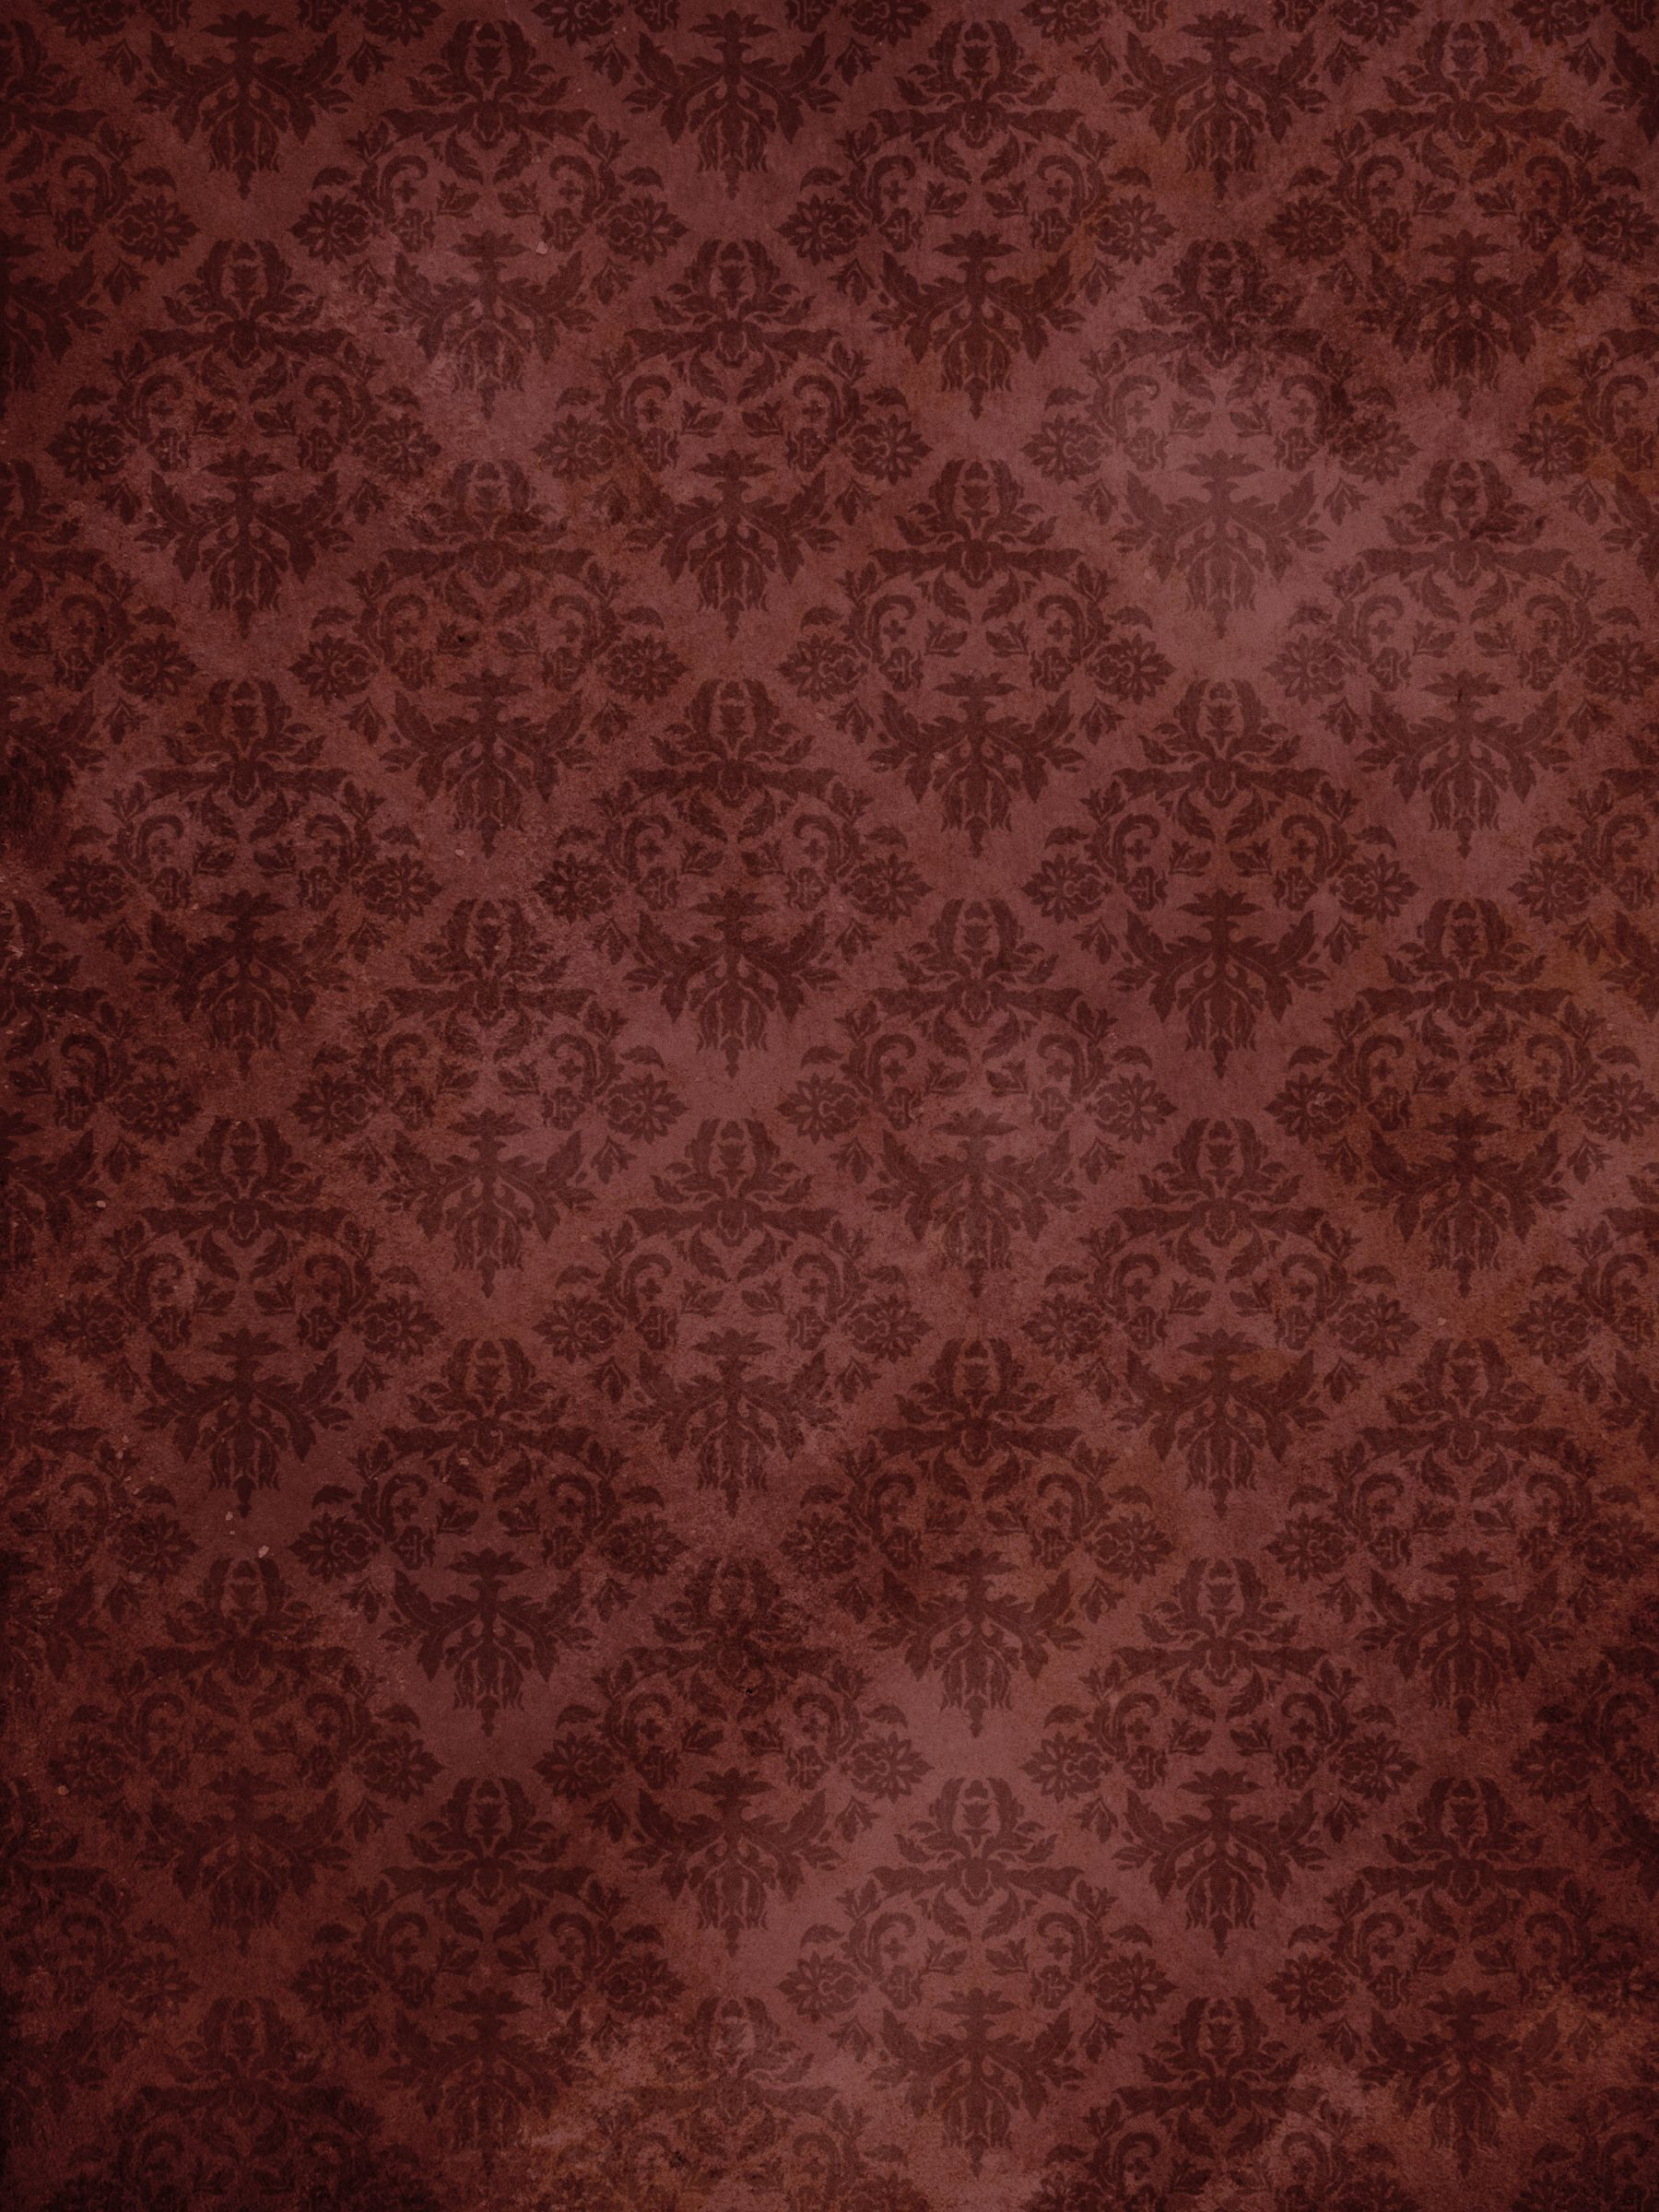 Wallpaper Designer Red Background with Gold Sand Textured Scroll